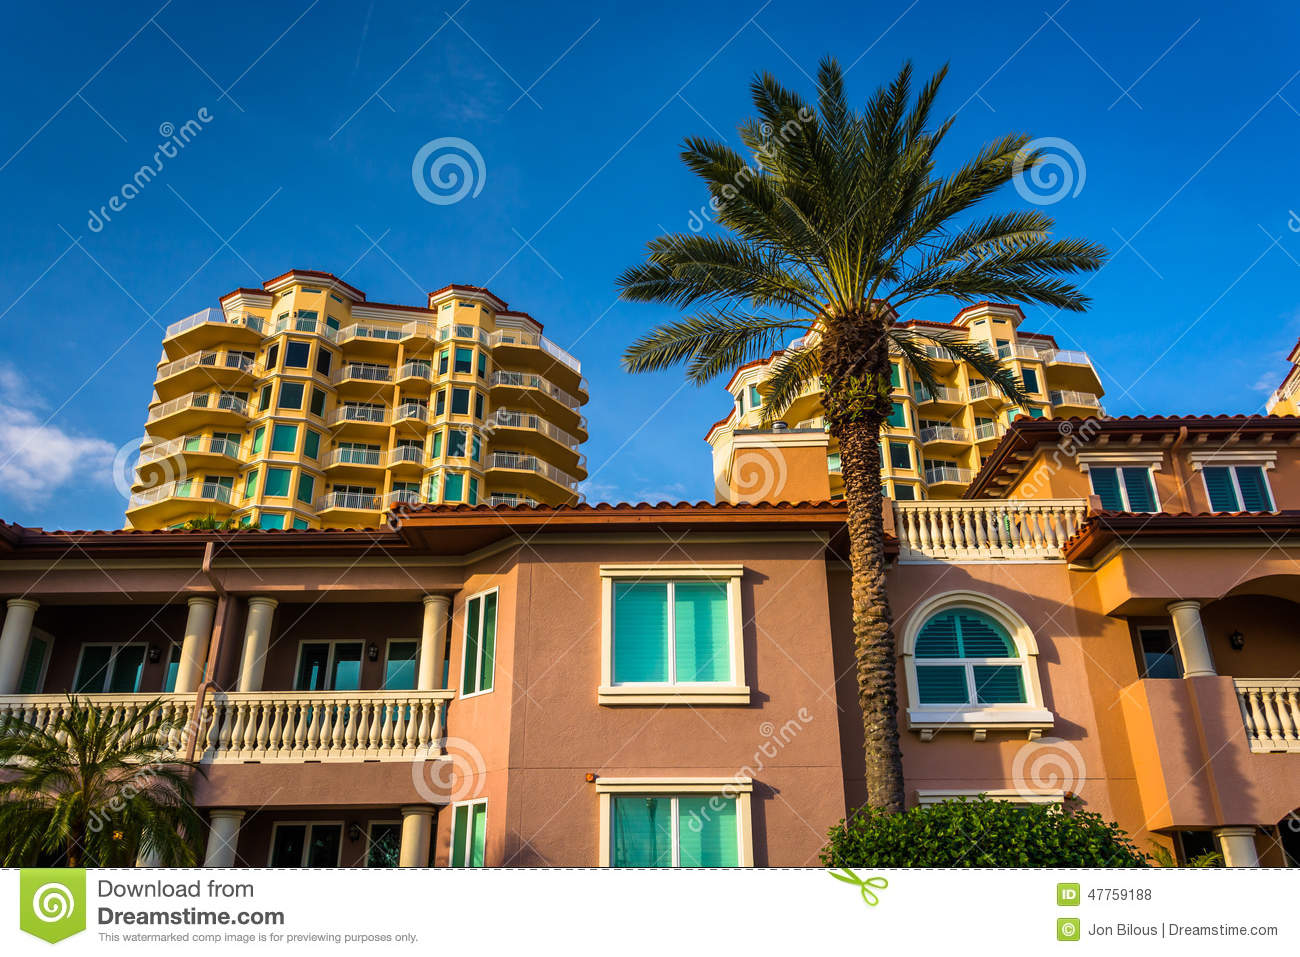 Palm trees, houses and condo towers in saint petersburg, florida